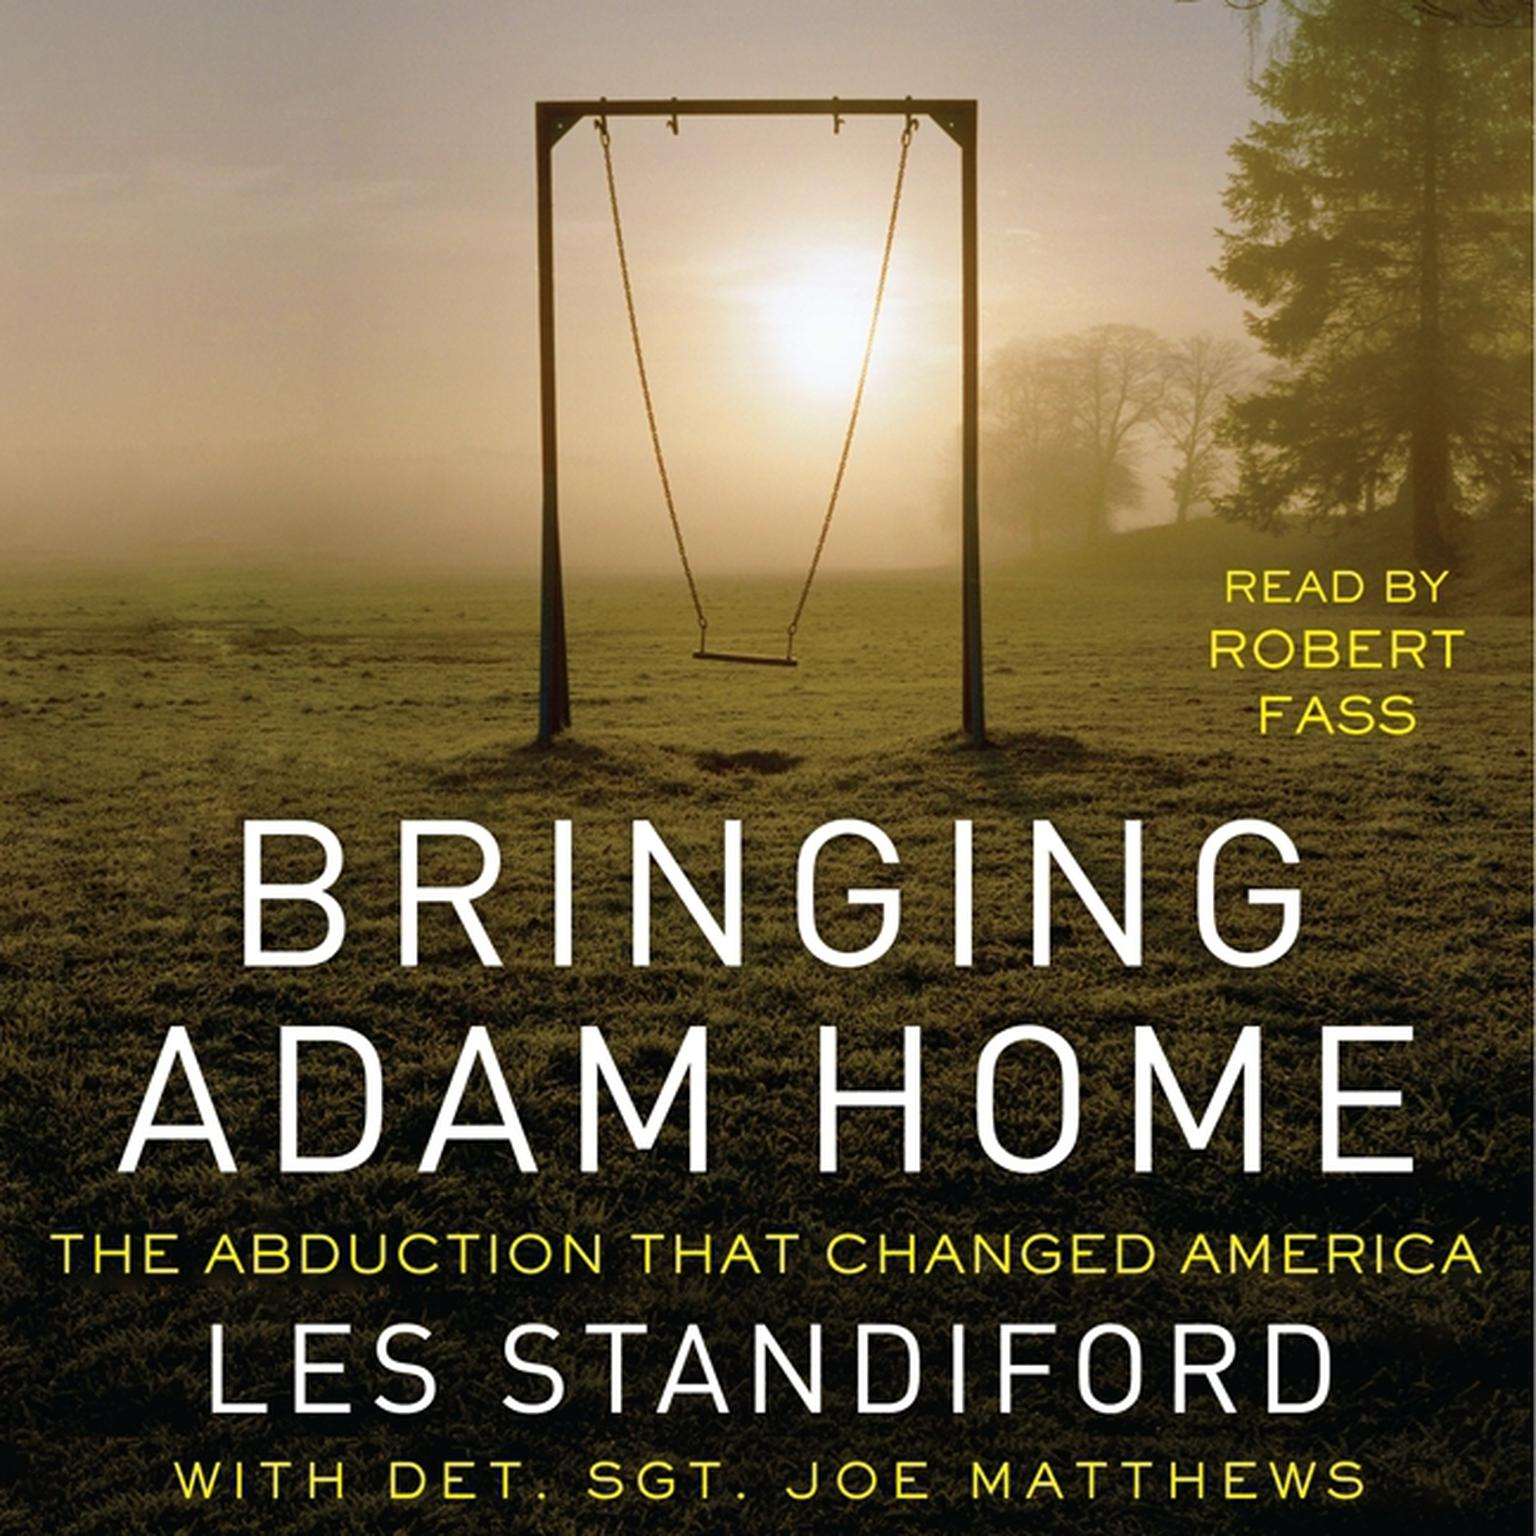 Printable Bringing Adam Home: The Abduction That Changed America Audiobook Cover Art